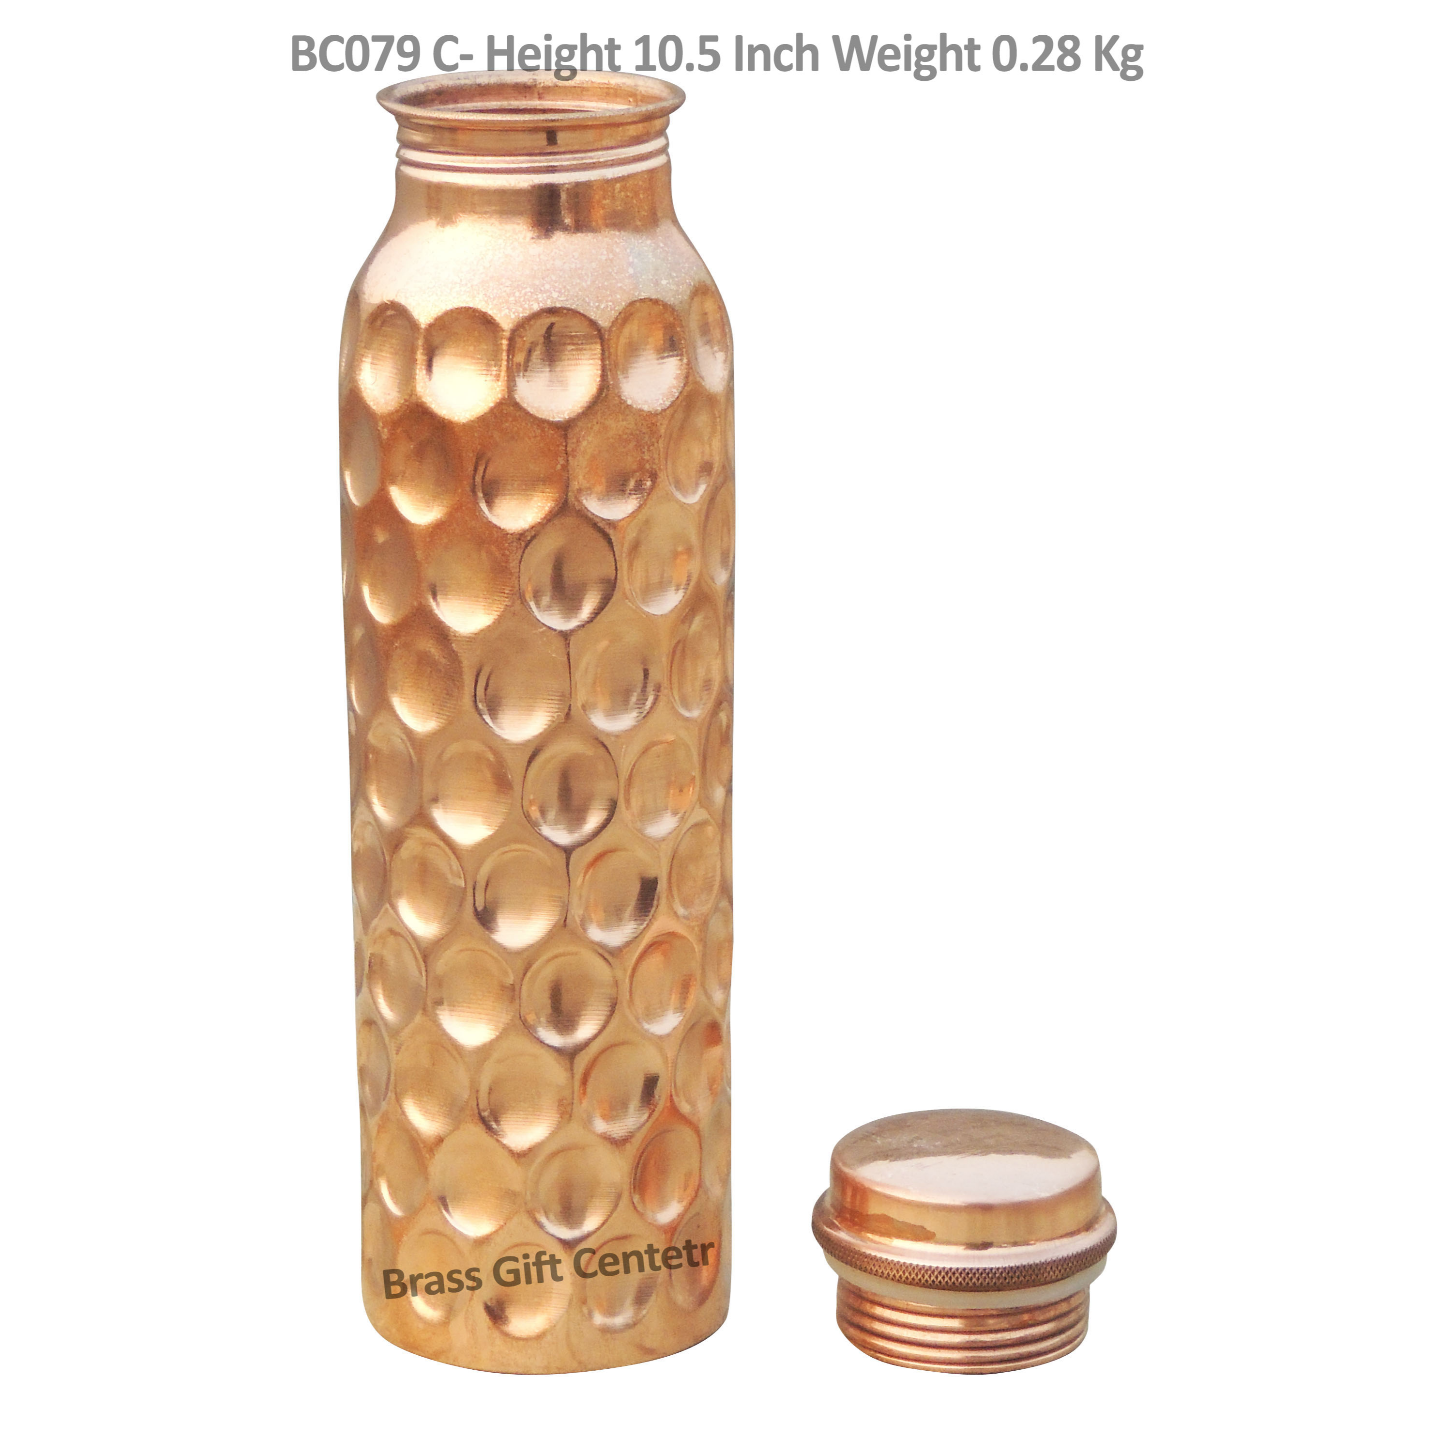 Copper Bottle Diamond BC079 C